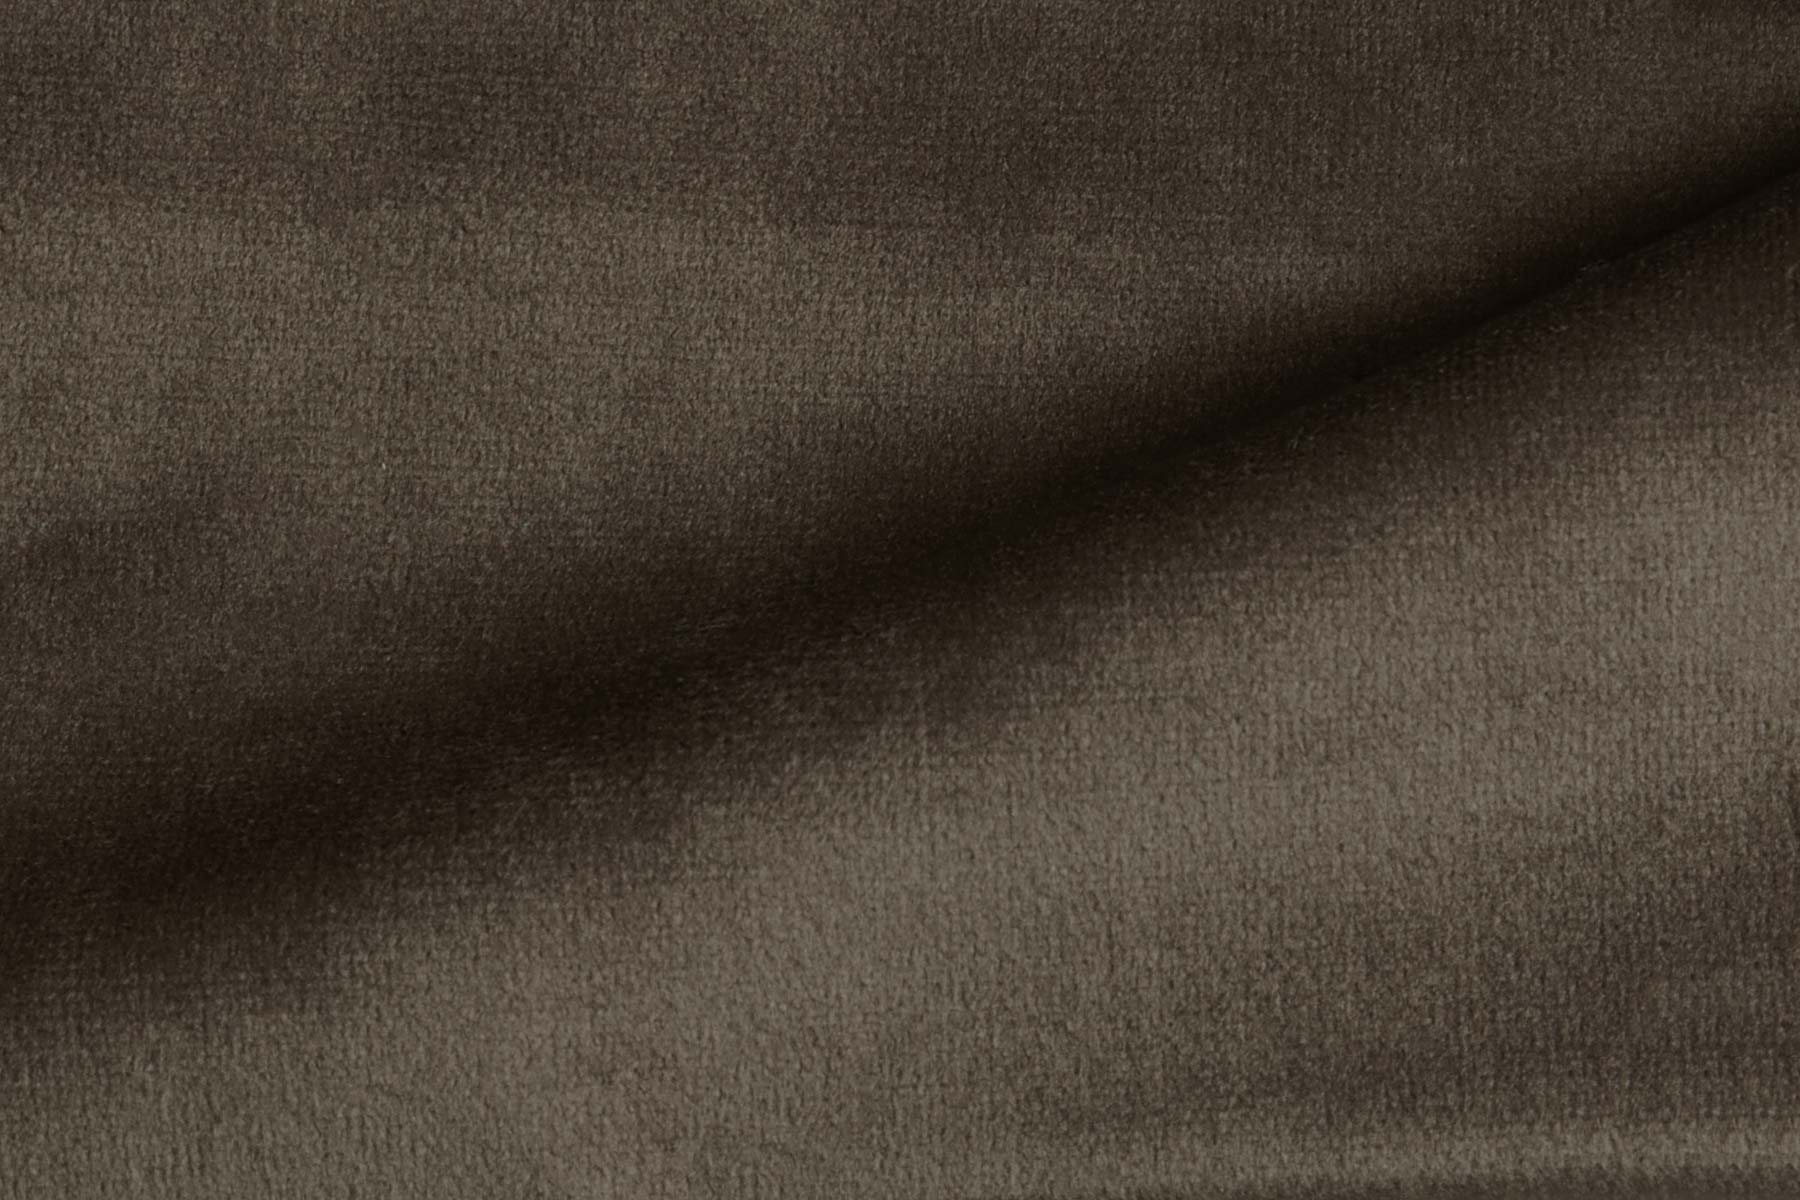 RADIANCE VELVET TAUPE Fabric by KOKET